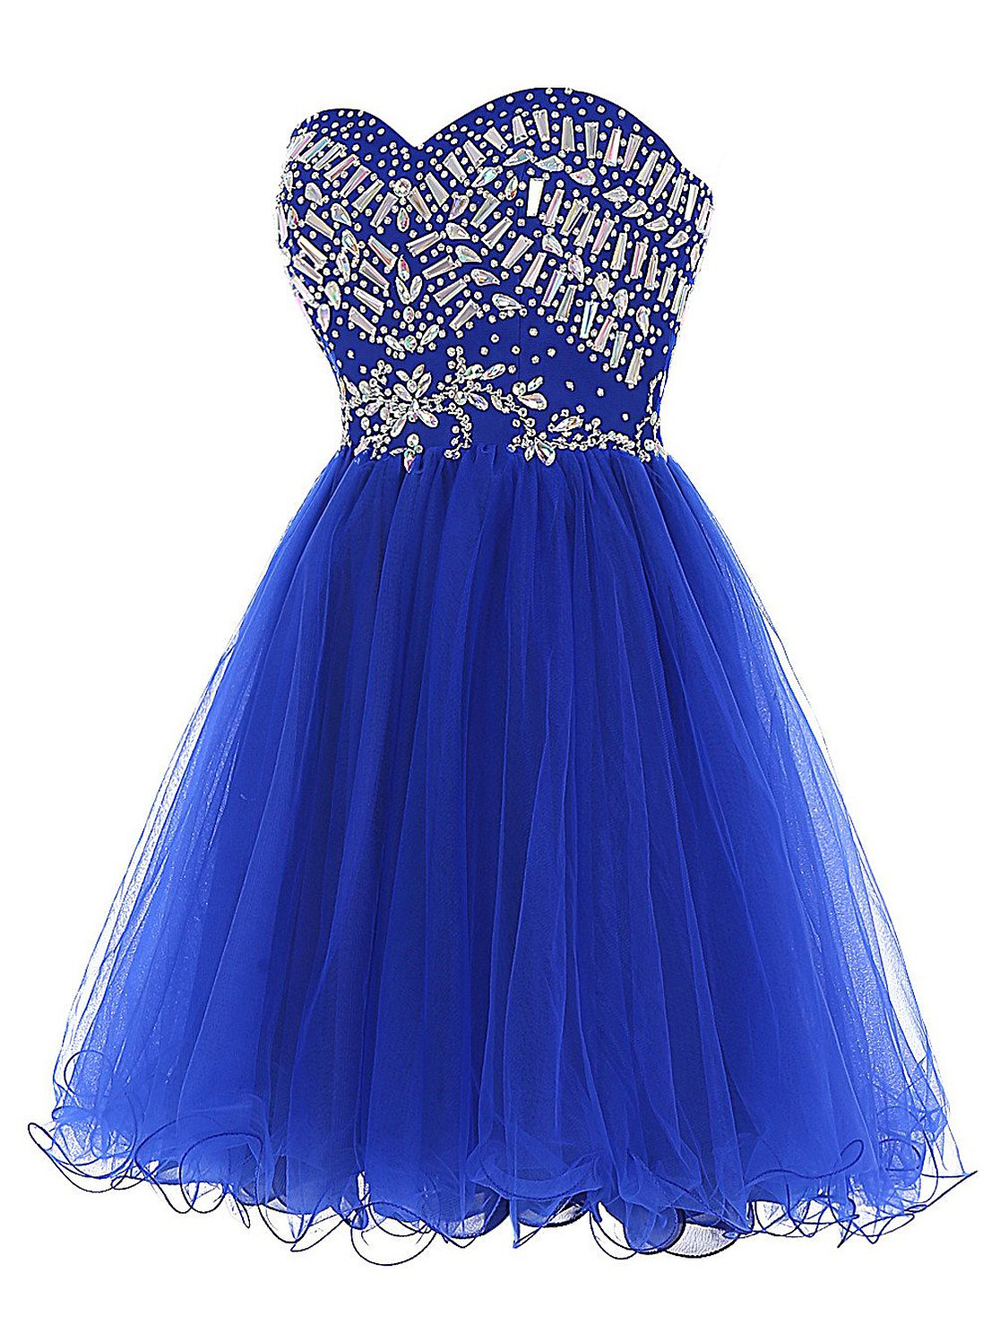 Hot-selling Sexy Sweetheart Royal Blue Homecoming Dress with Rhinestones фото